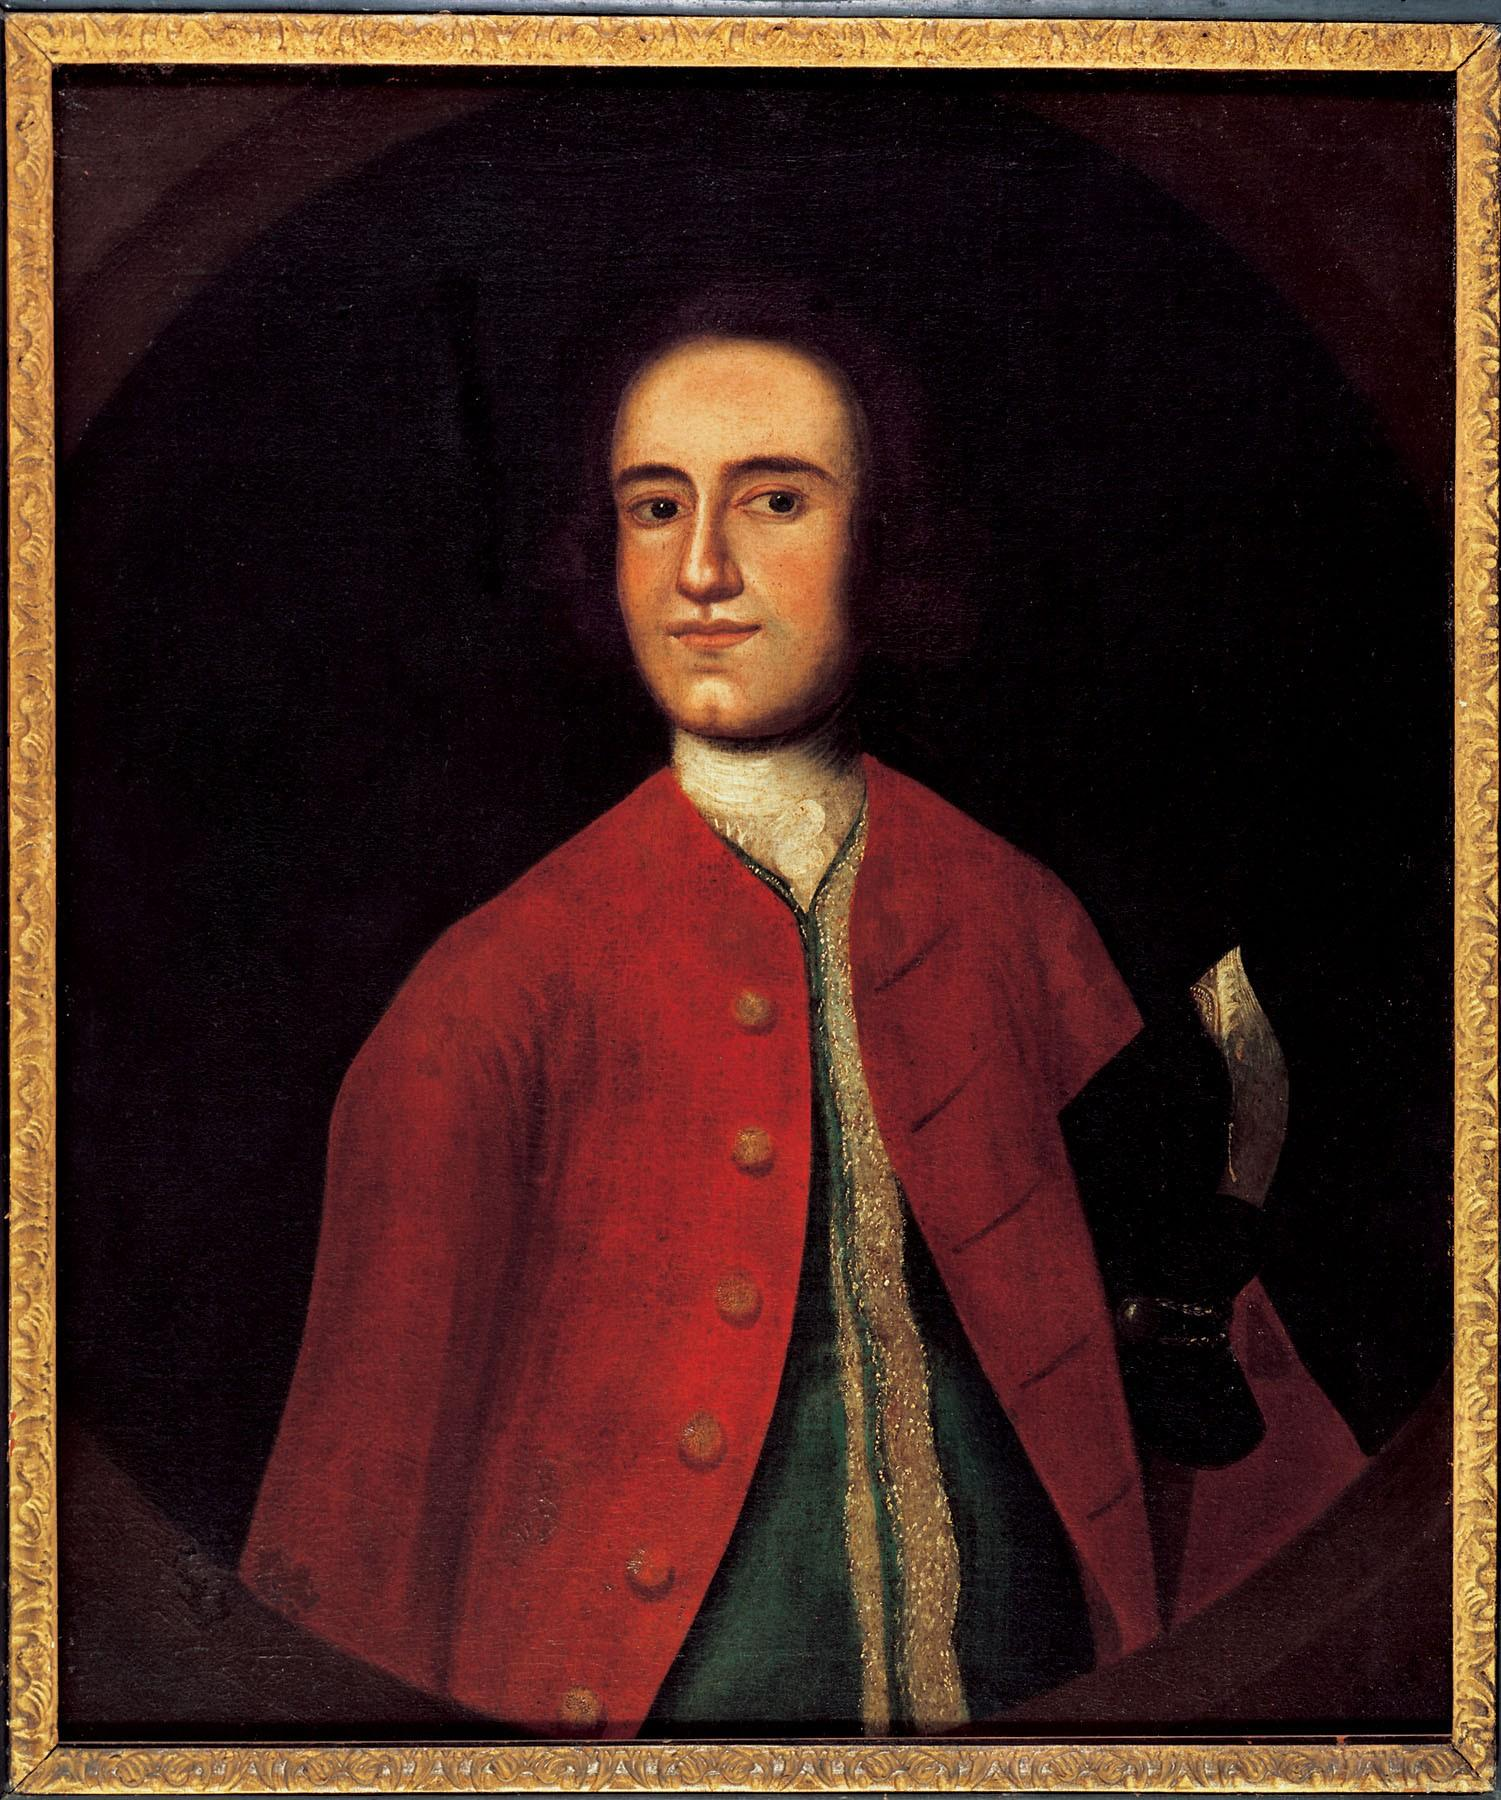 Lawrence Washington, attributed to Gustavus Hesselius, ca. 1738 (MVLA)